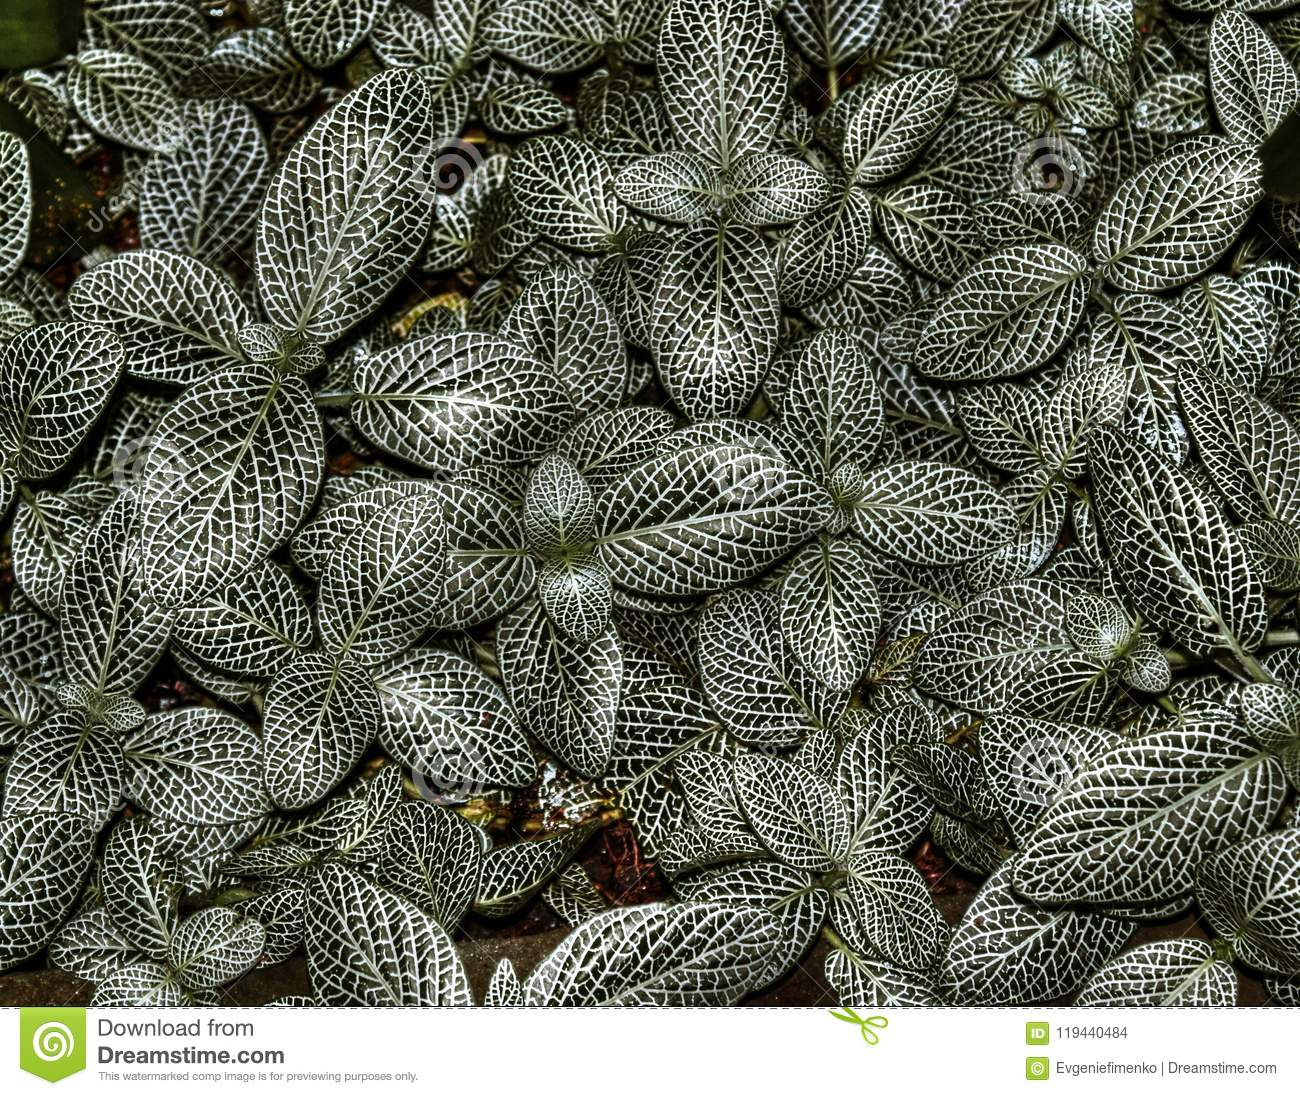 Leaves of plant Fittonia Albivenis